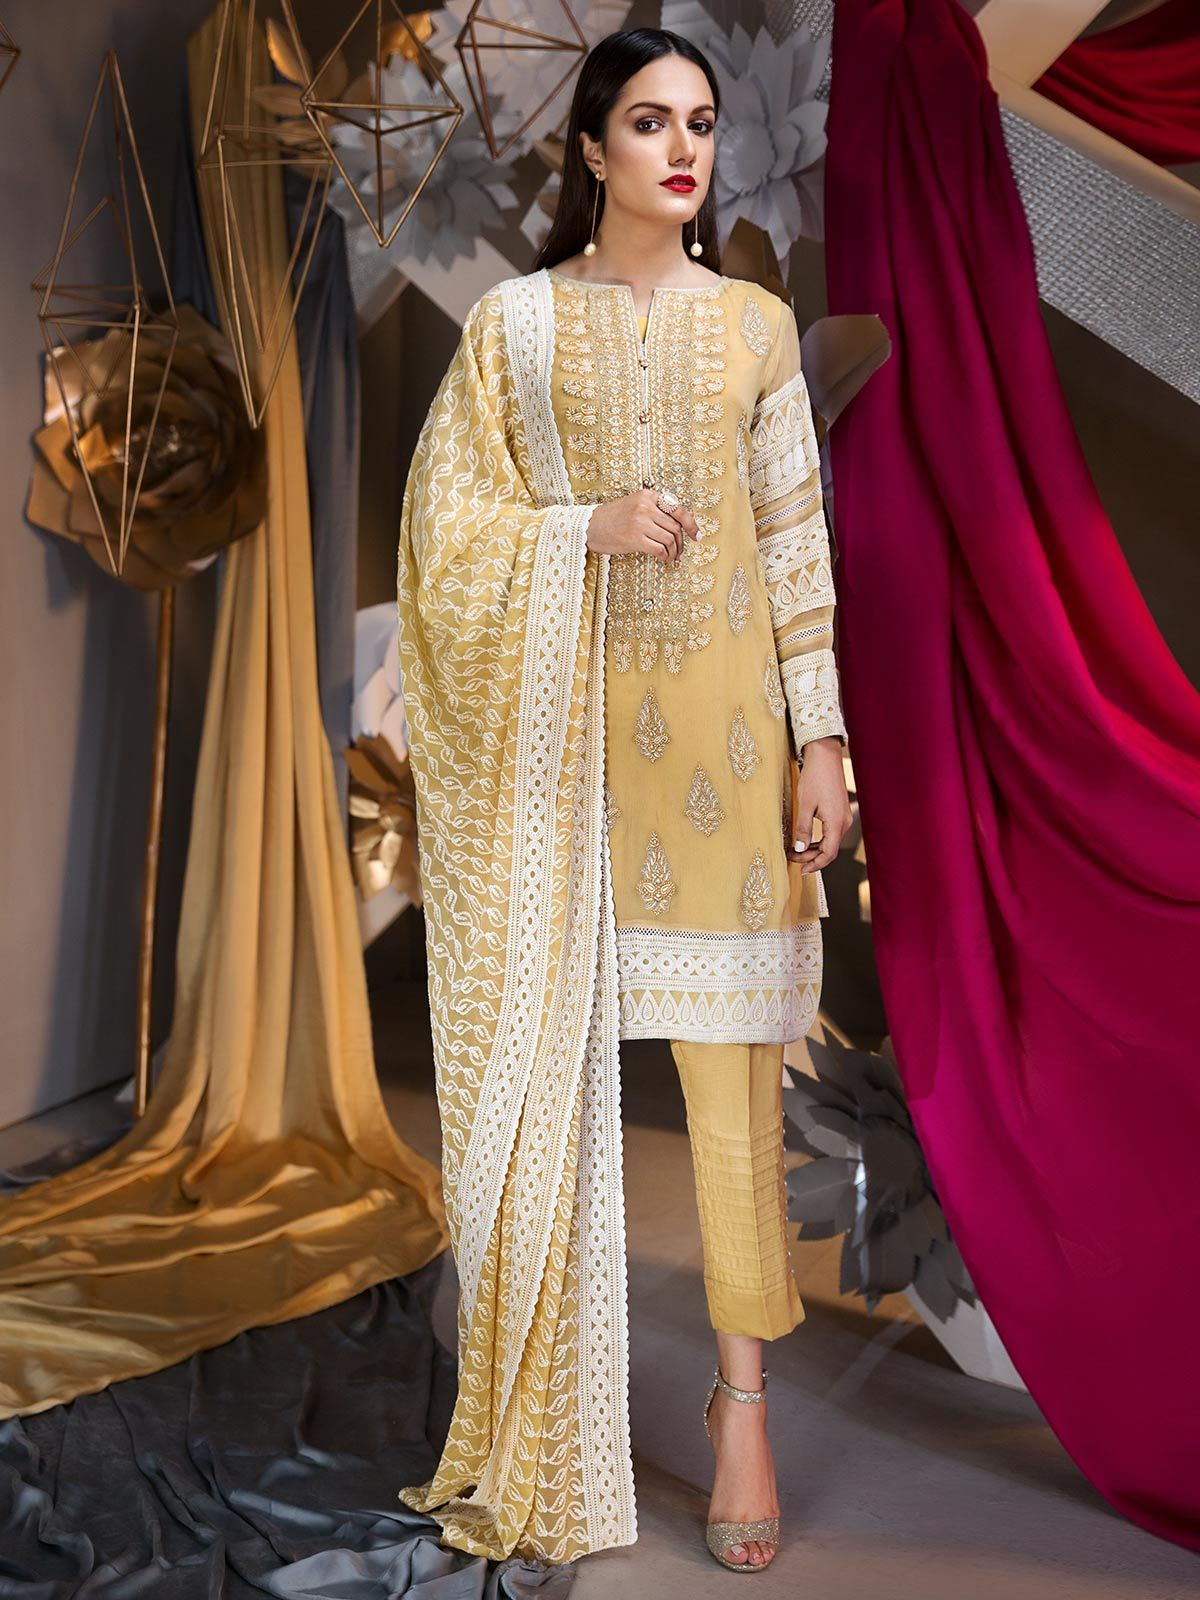 e834a7dad32 Pakistani traditional style 3 piece cream dress by Eden robe Pakistani eid  dresses  springcollection  spring  readytowear  pretwear  unstitched  online  ...